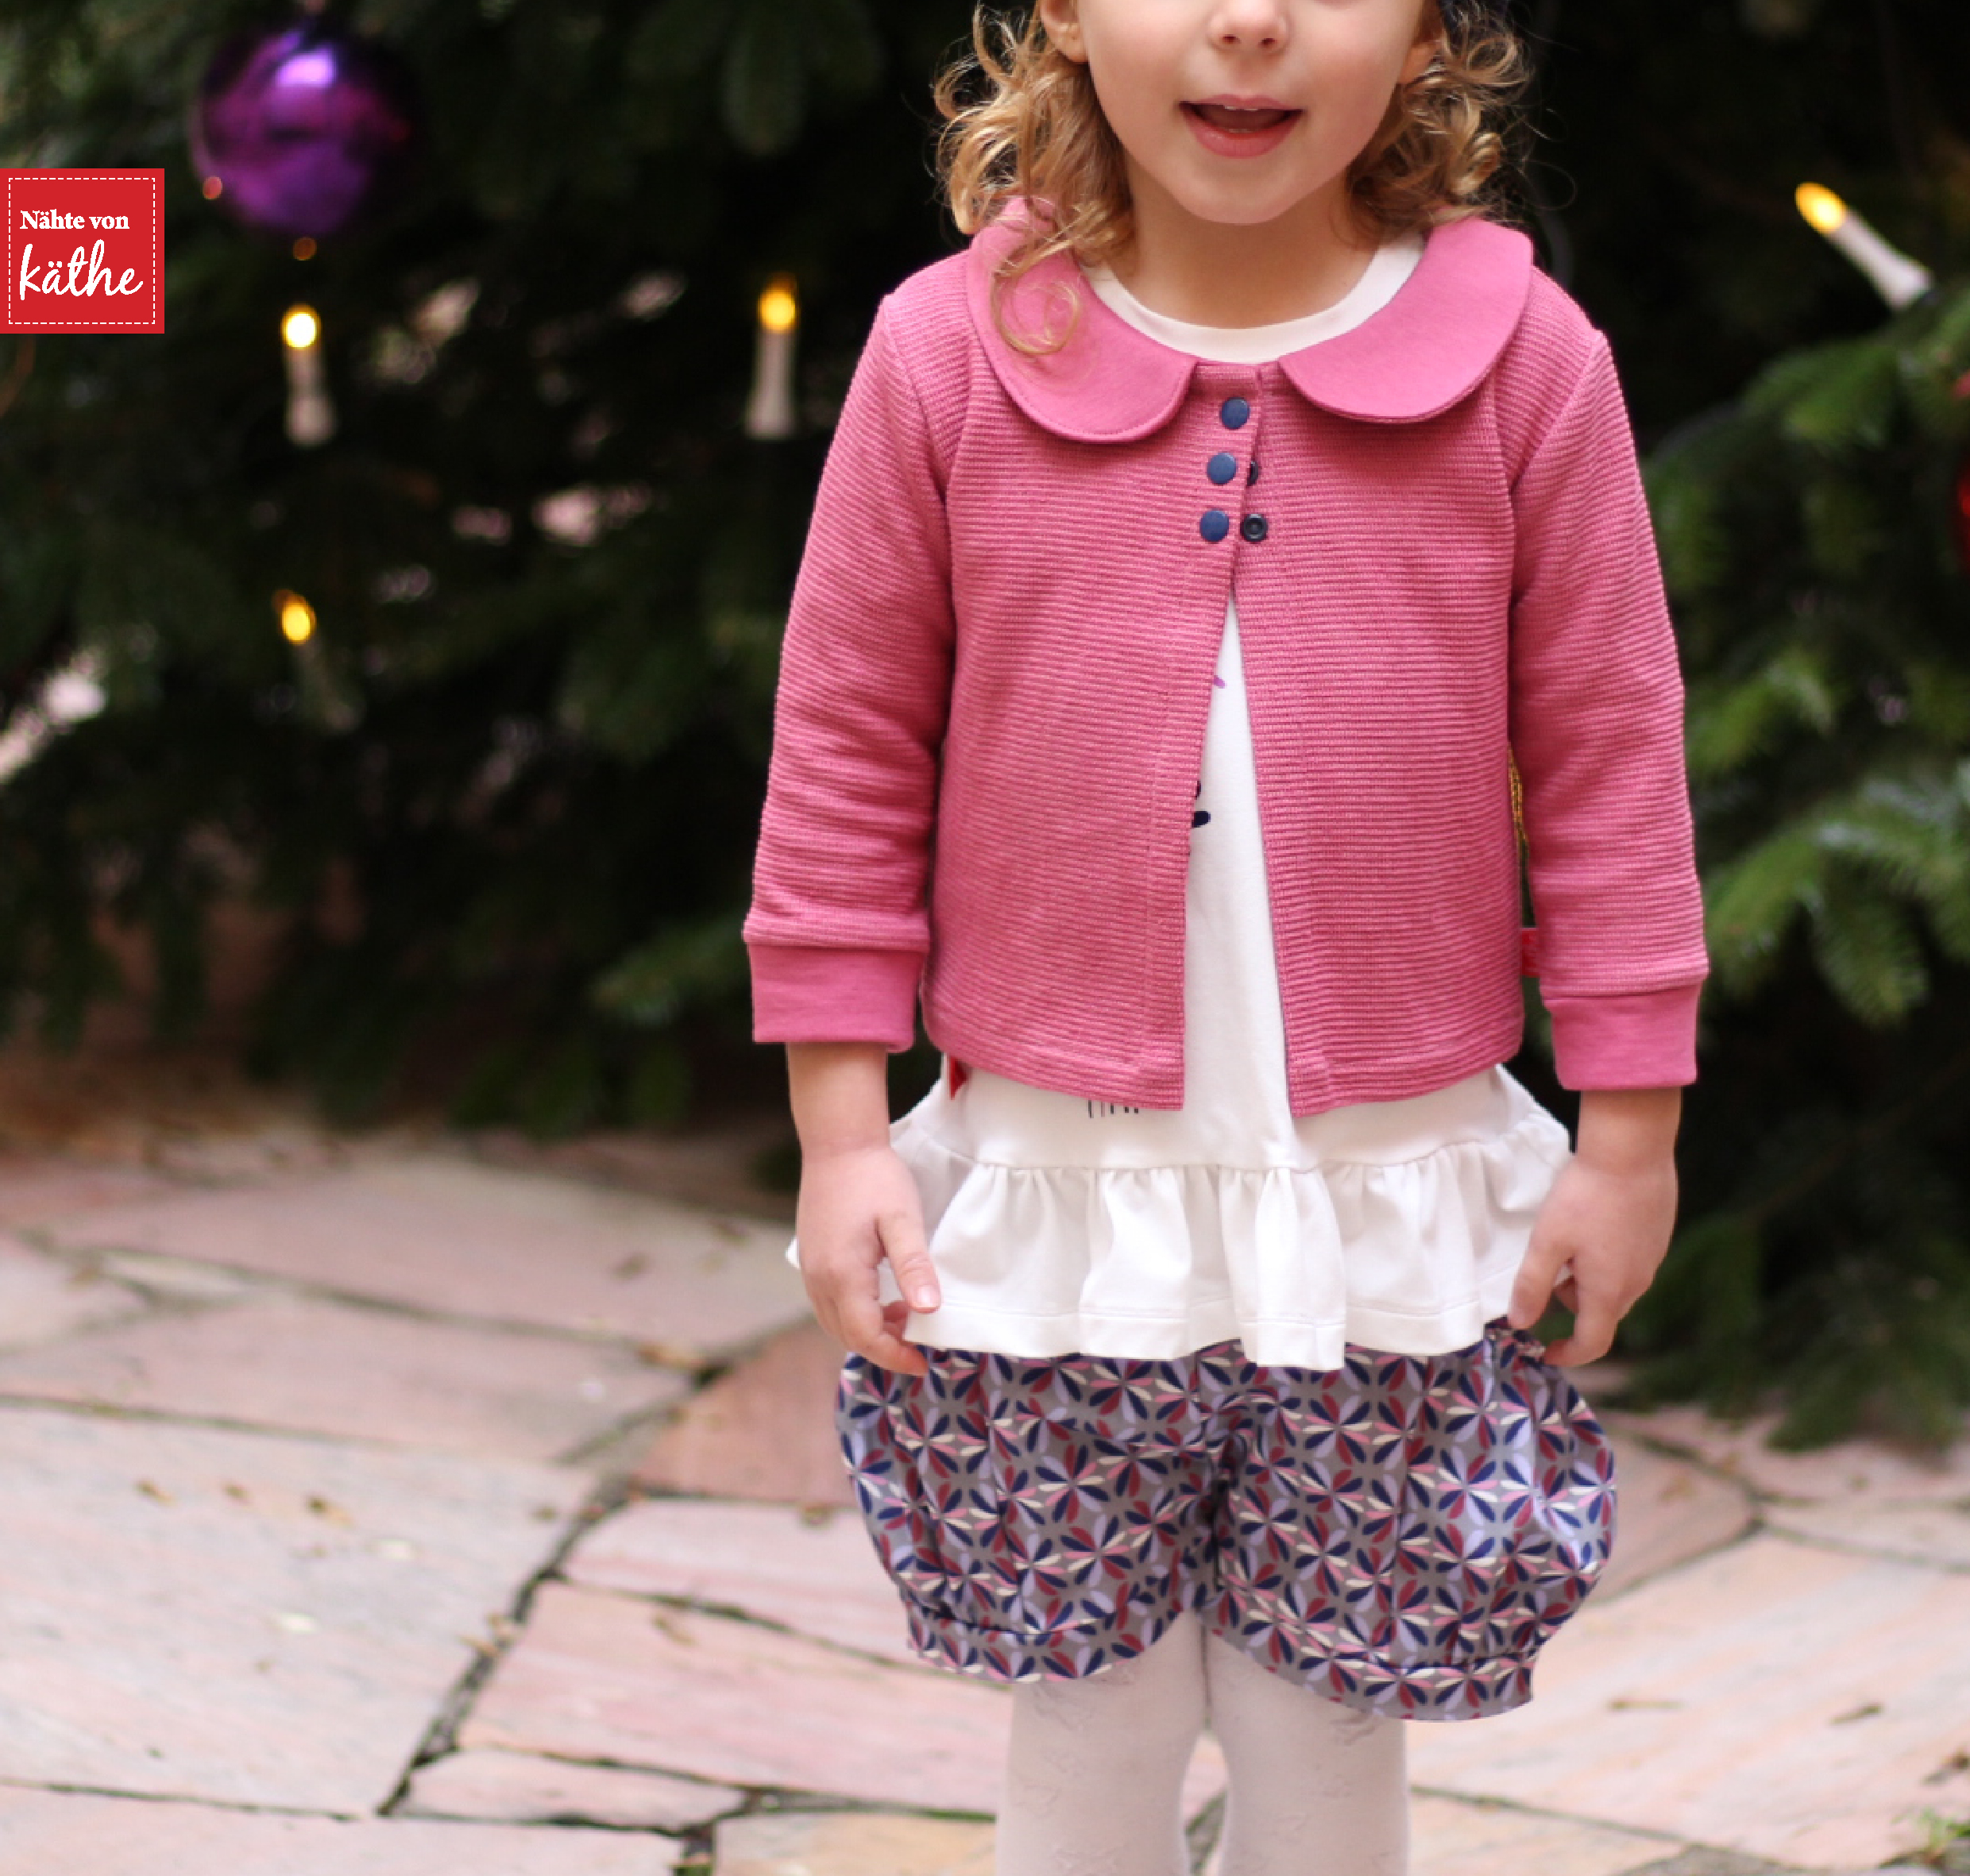 Aster Cardigan von LBG Studio, Bubble Pocket Shorts von E&E Patterns, Mieze von Rosarosa